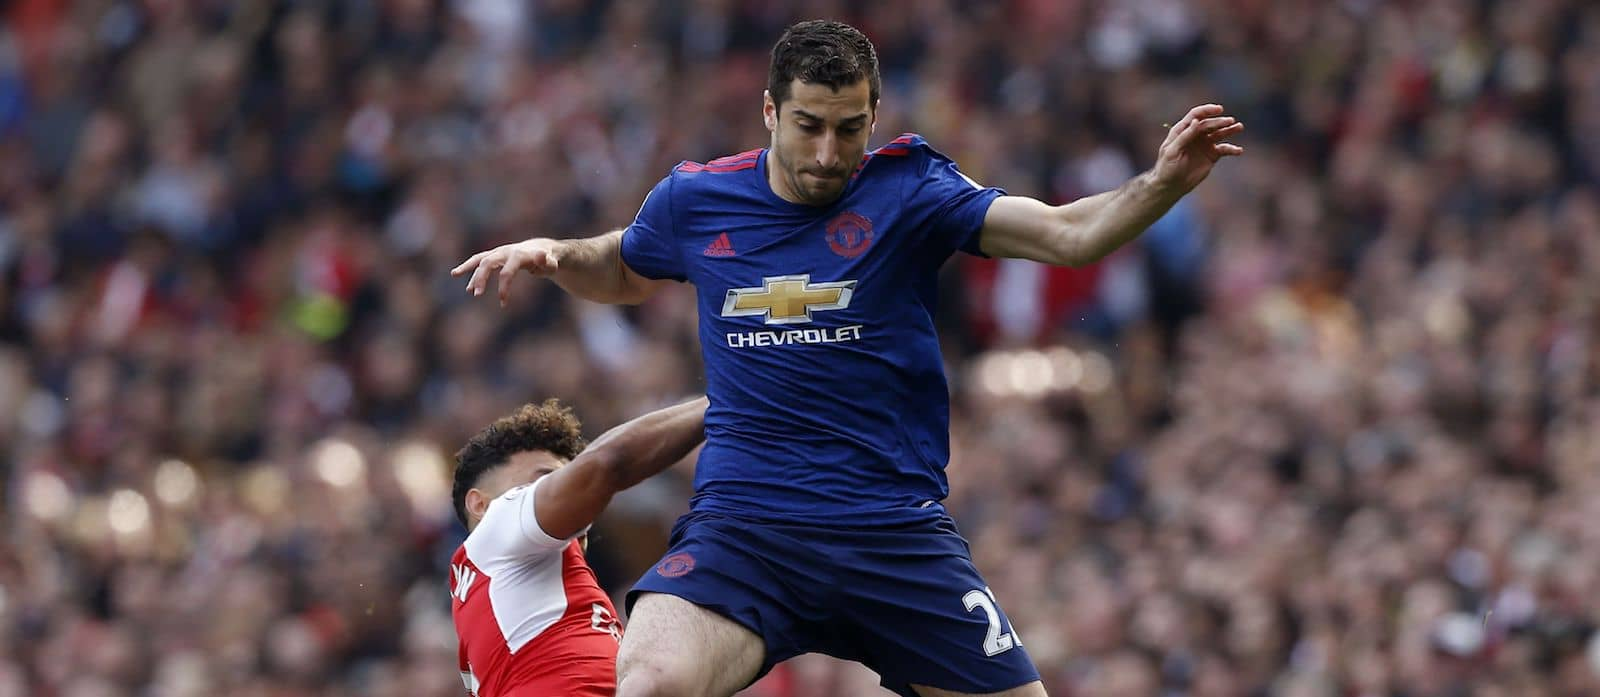 Manchester United fans lament wastefulness of Henrikh Mkhitaryan in Champions League win against FC Basel